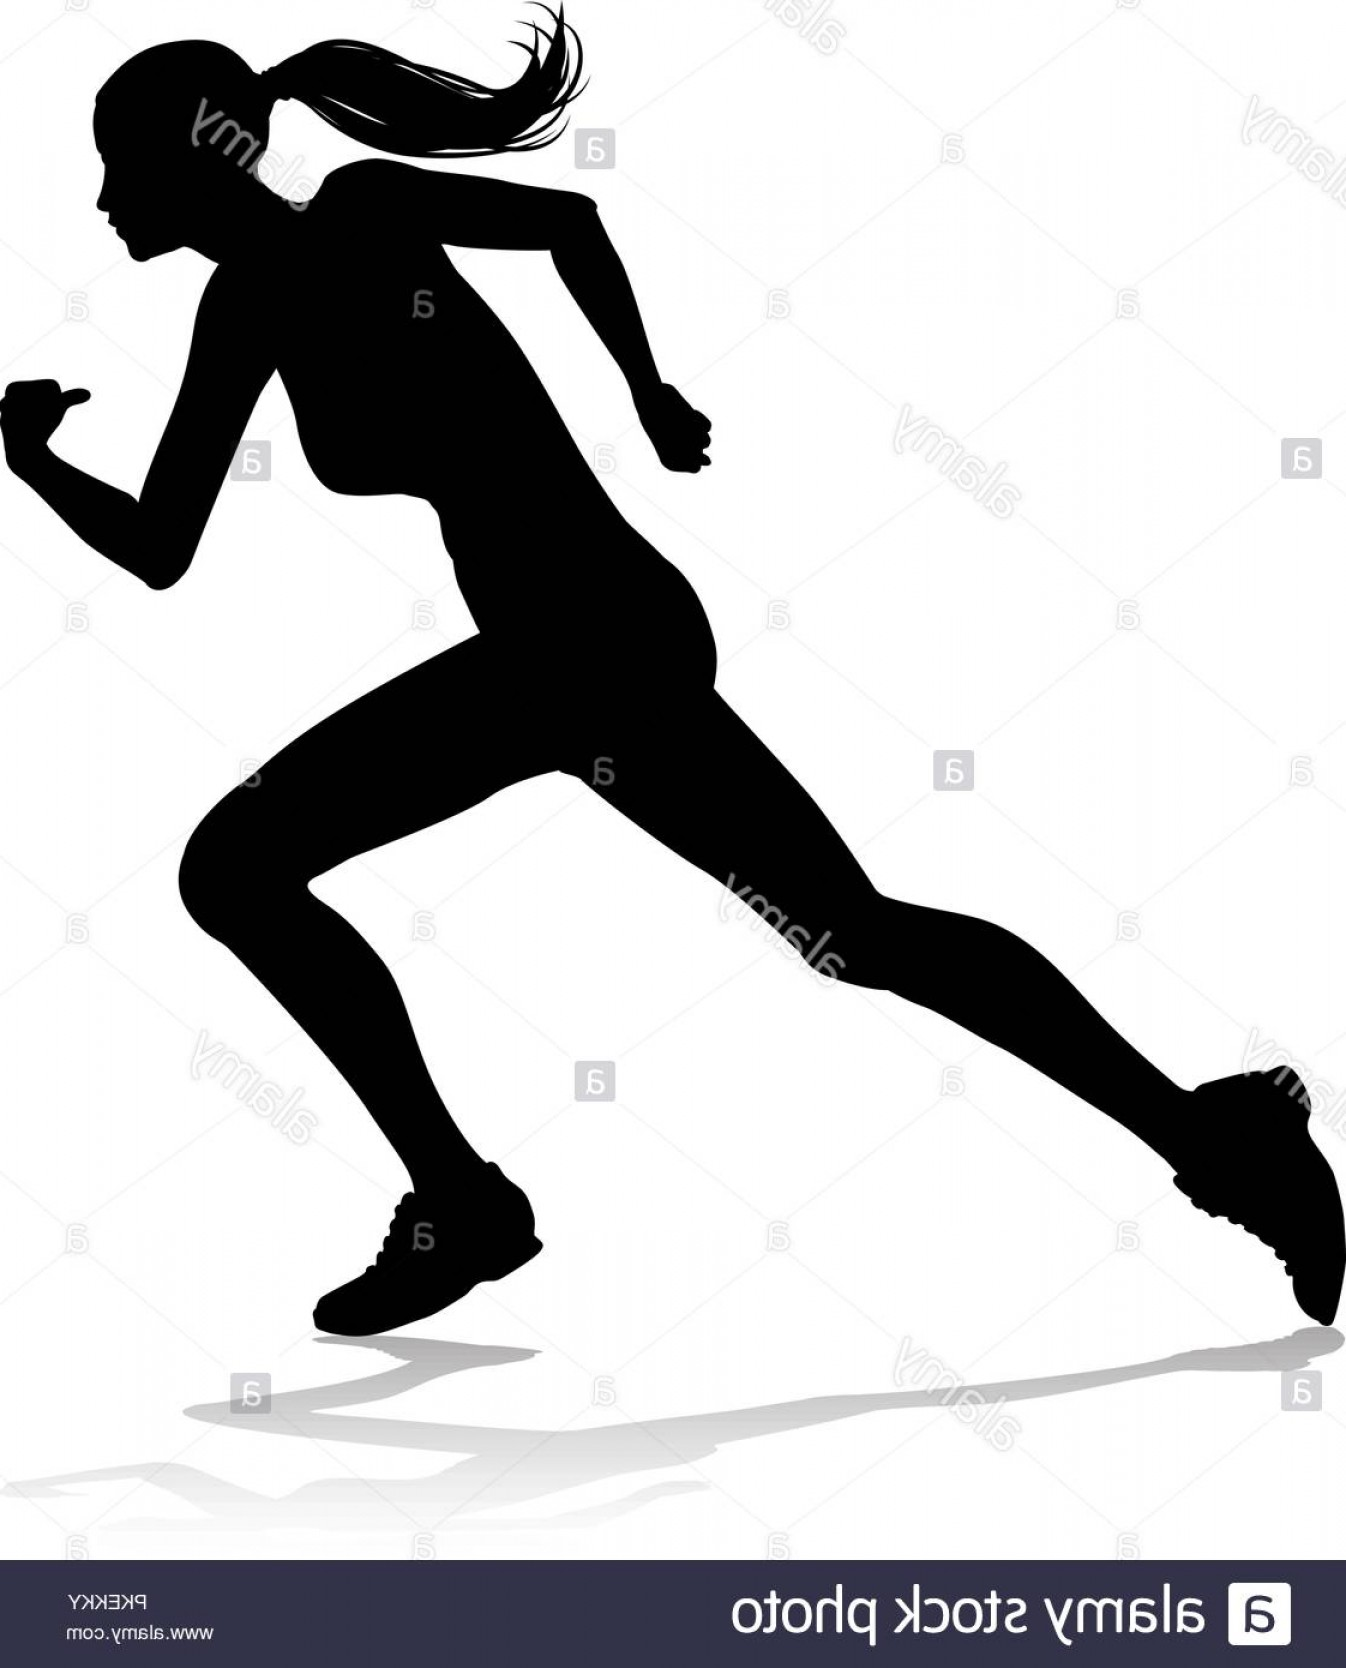 Vector Silhouette Of Girl Running Track: Runner Racing Track And Field Silhouette Image